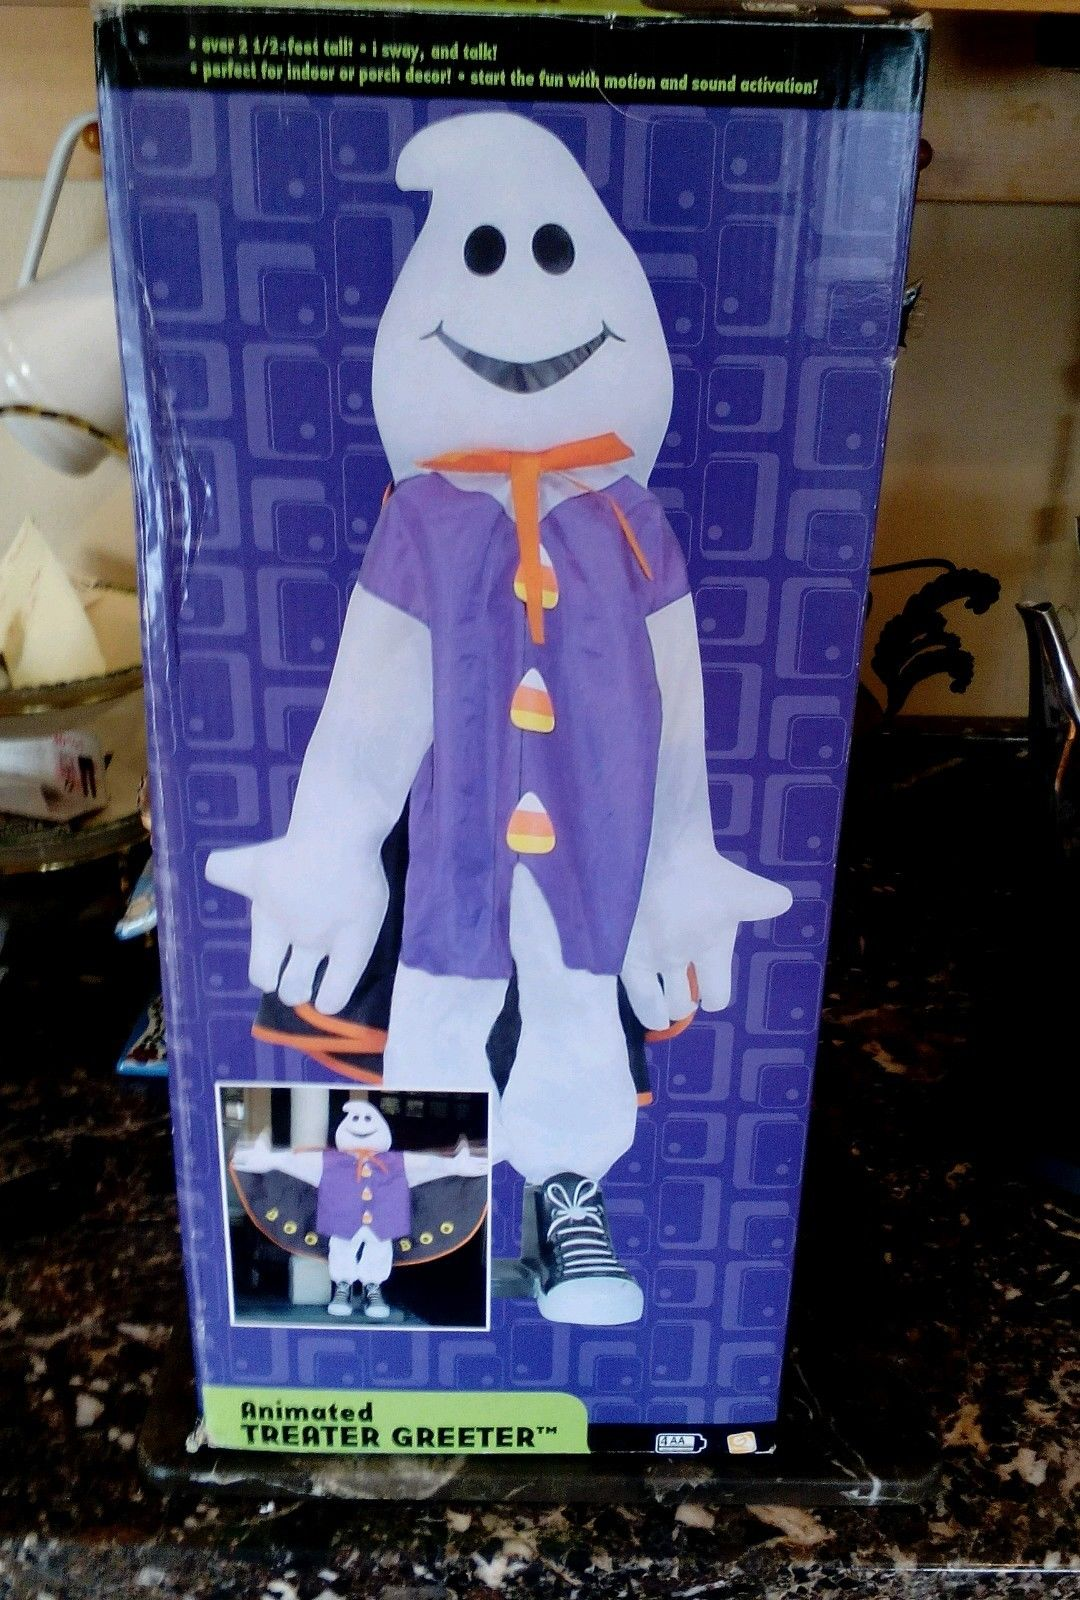 gemmy 2 feet plus ghost plush door greeter halloween animated talking nicejpg - Www Gemmy Com Halloween